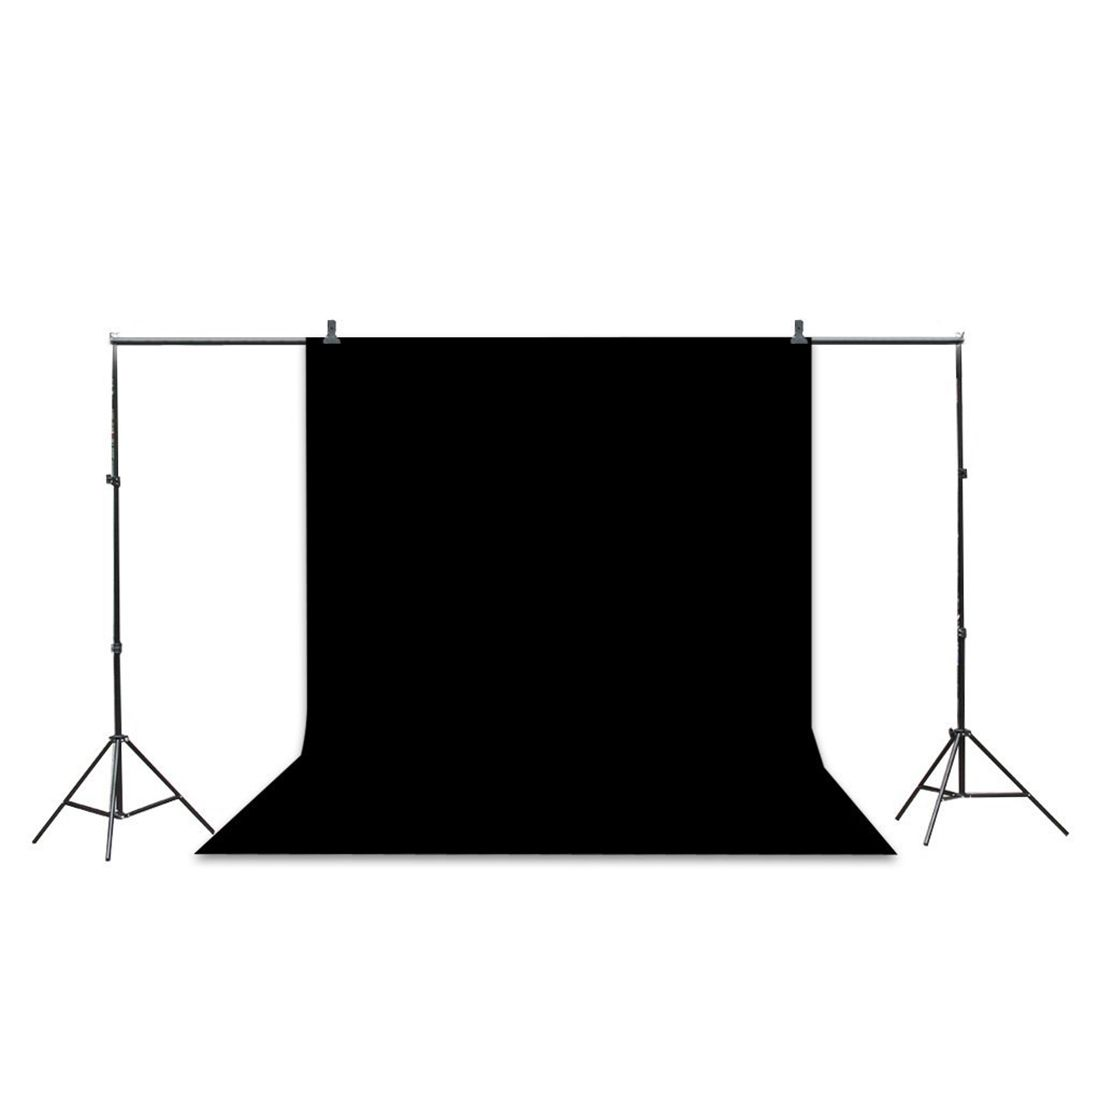 Professional Studio Background Stand Kit - 10x6.5ft Photo Backdrop Support Stand Kit + Backdrop Screen (Black,Green,